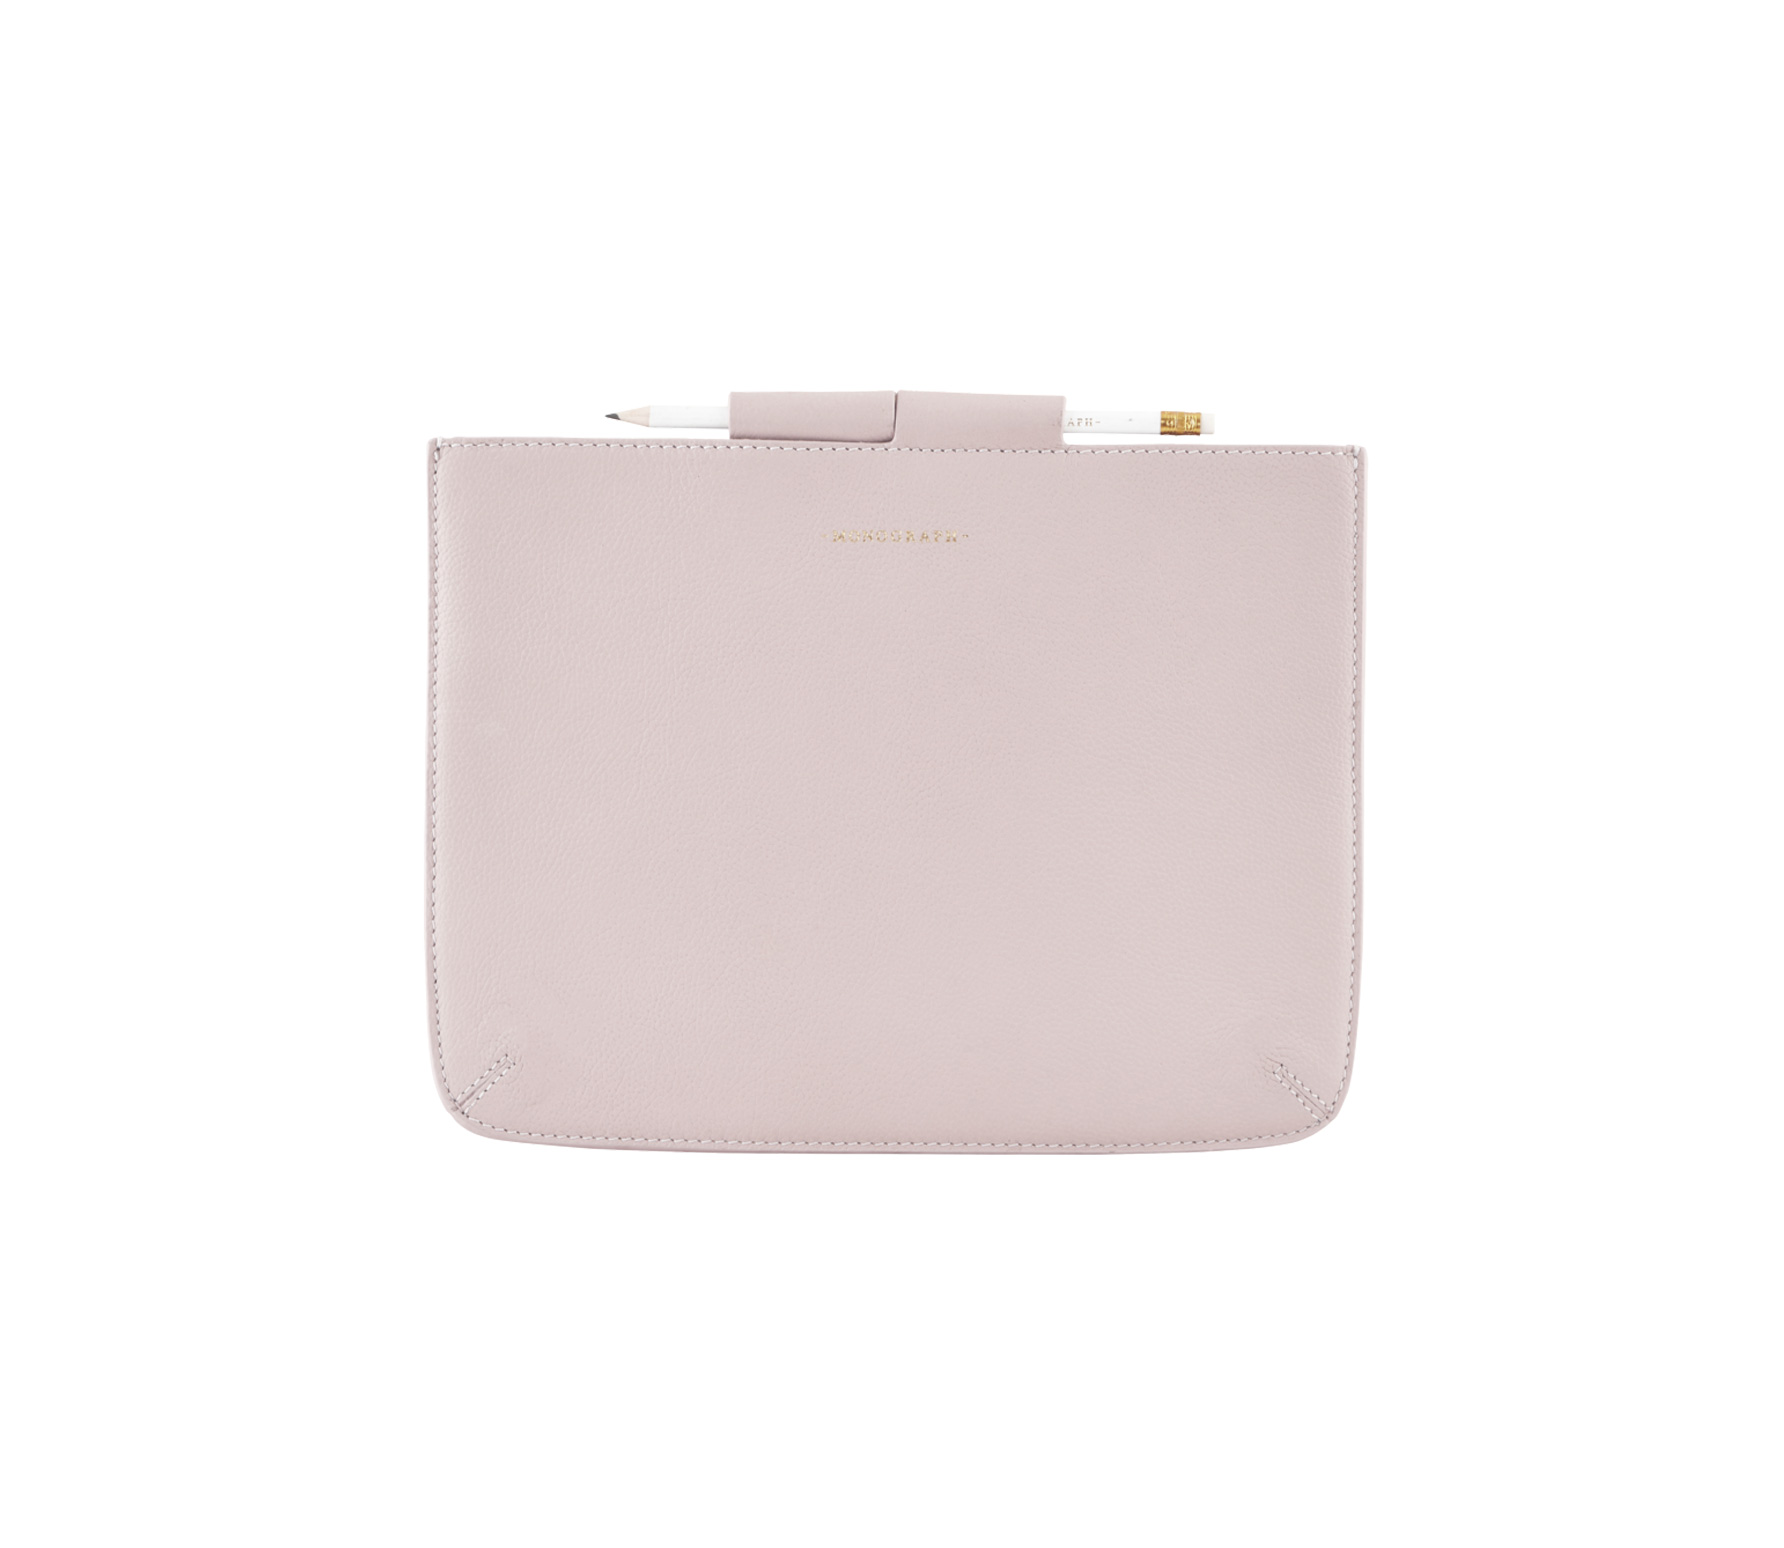 Housedoctor Cover iPad hoes leer roze Pro 35,5 x 26,5 cm